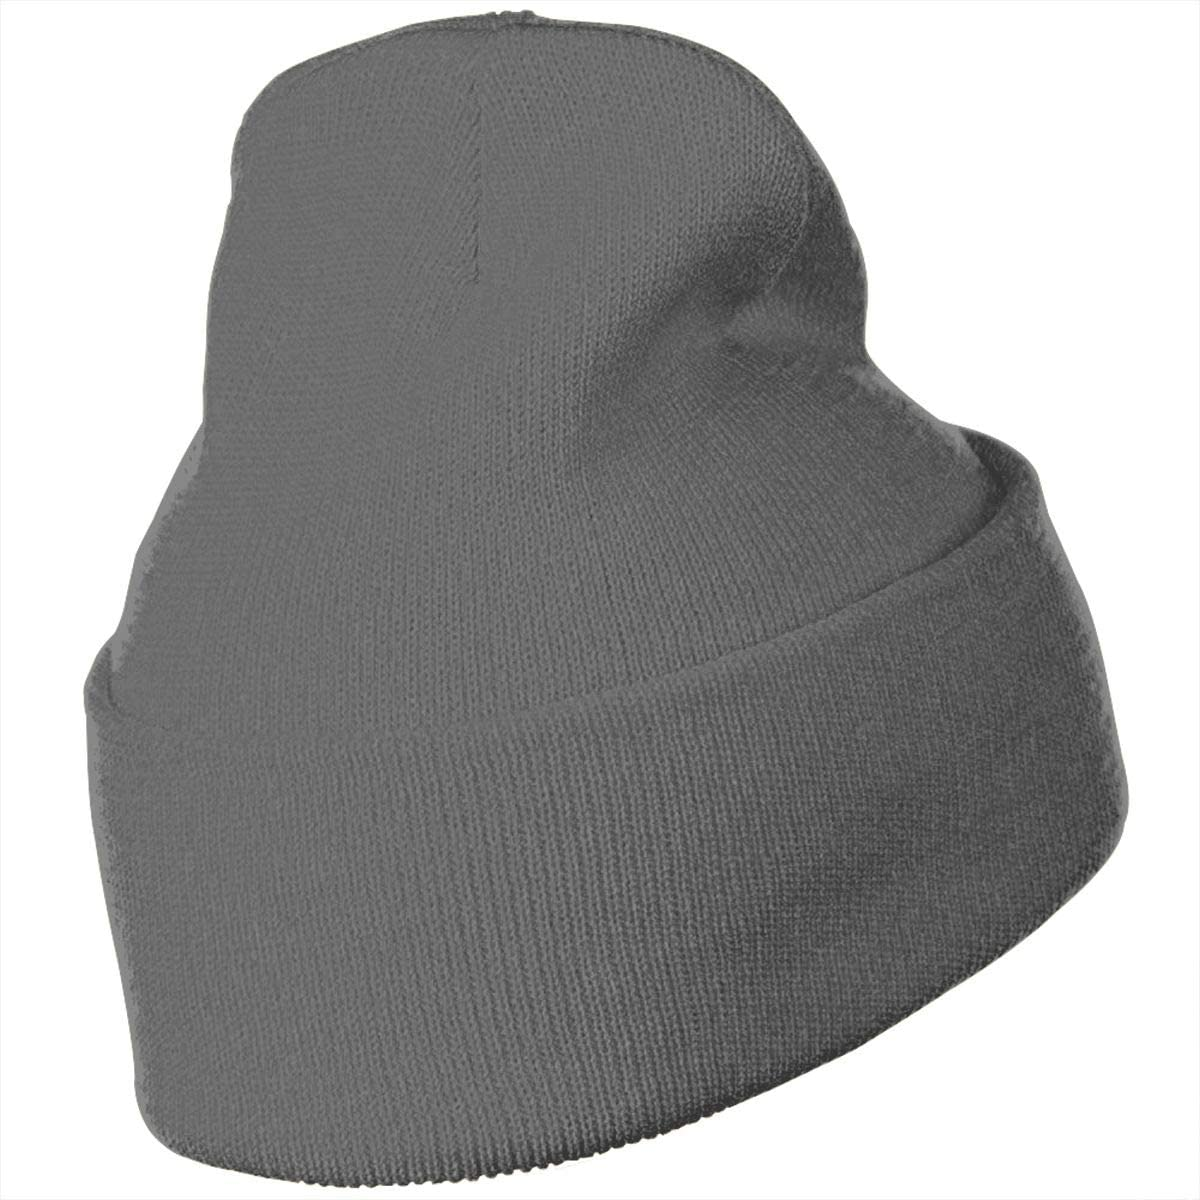 Astronaut Space Art Hat for Men and Women Winter Warm Hats Knit Slouchy Thick Skull Cap Black